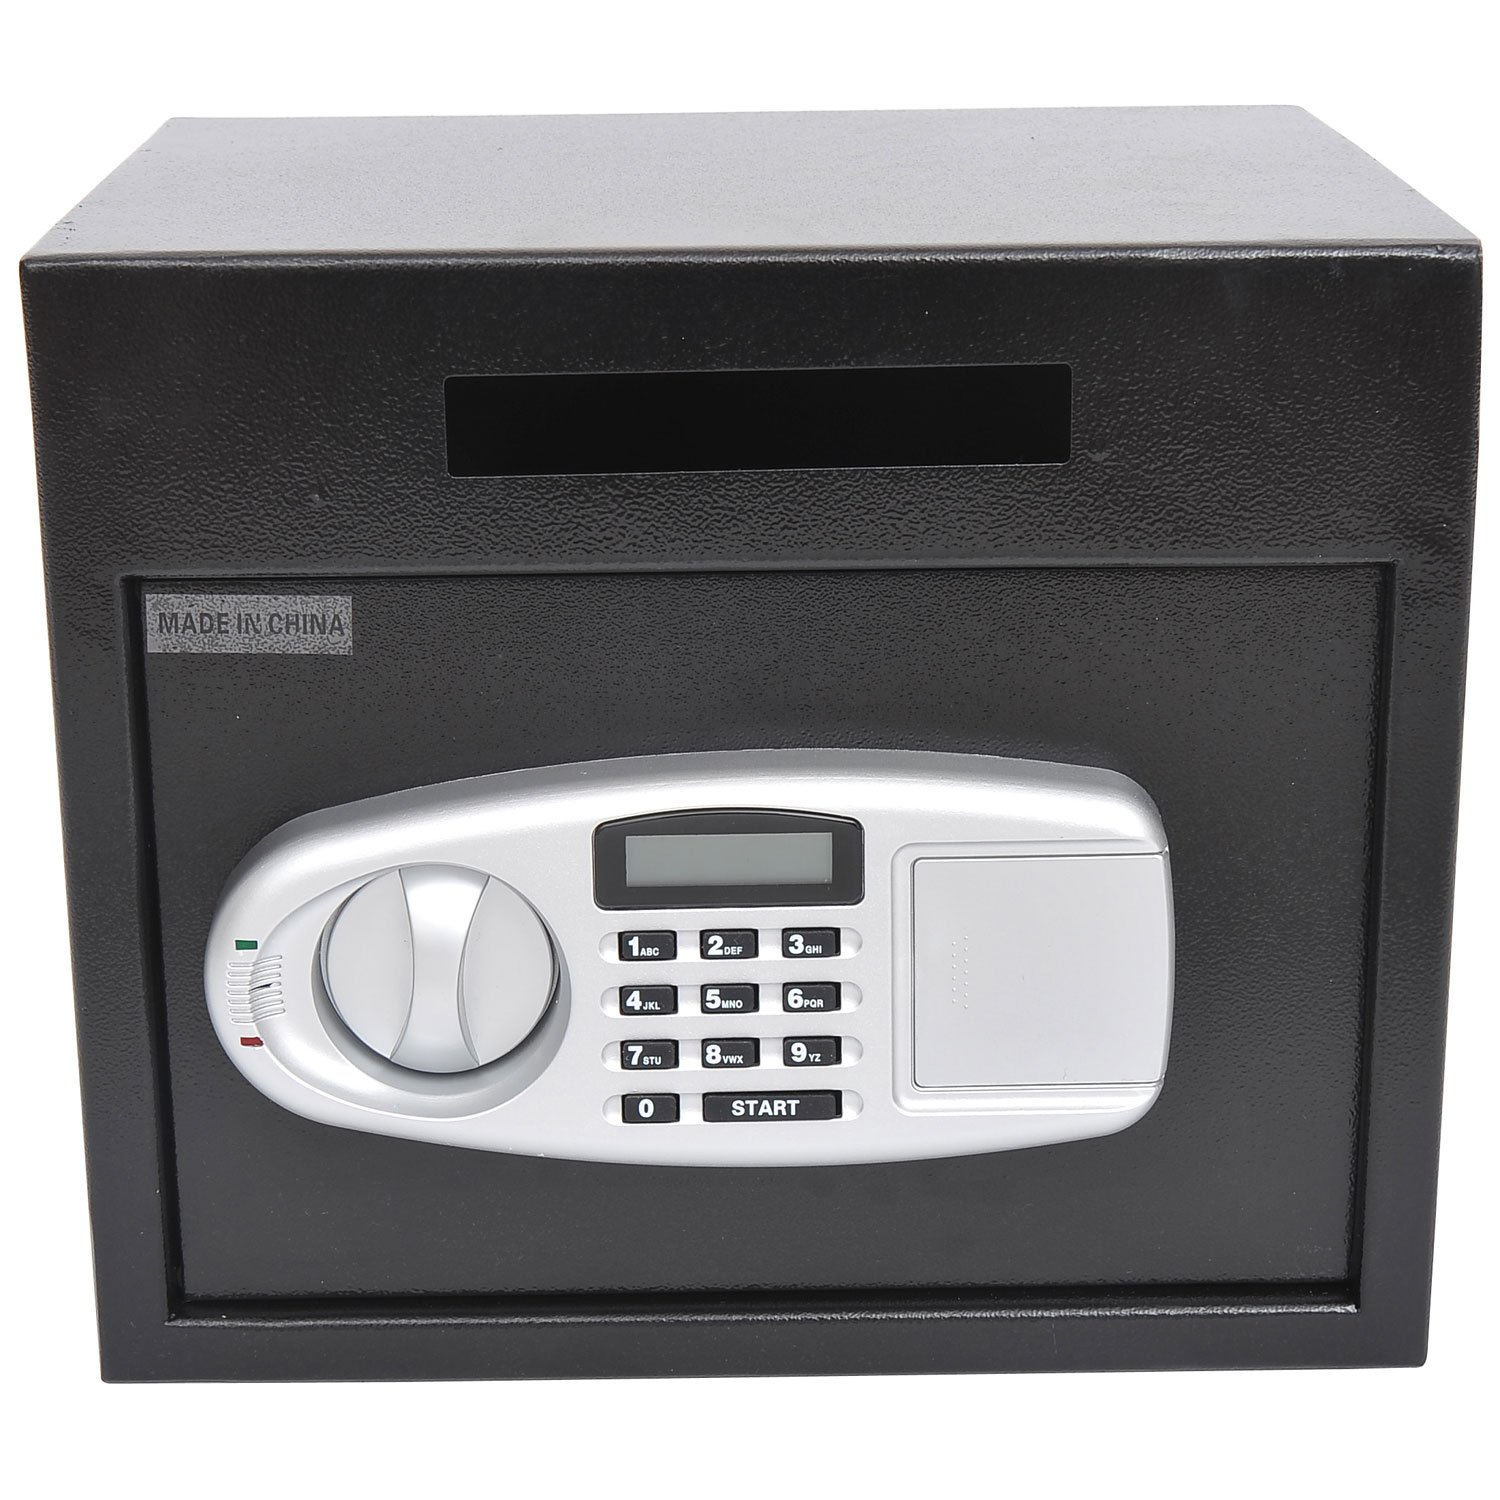 HOMCOM Wall Mounted Steel Electronic Digital Safe Box with Letter Drop Slot Keypad Lock Gun Cash Jewelry Security, Black Mhcanada